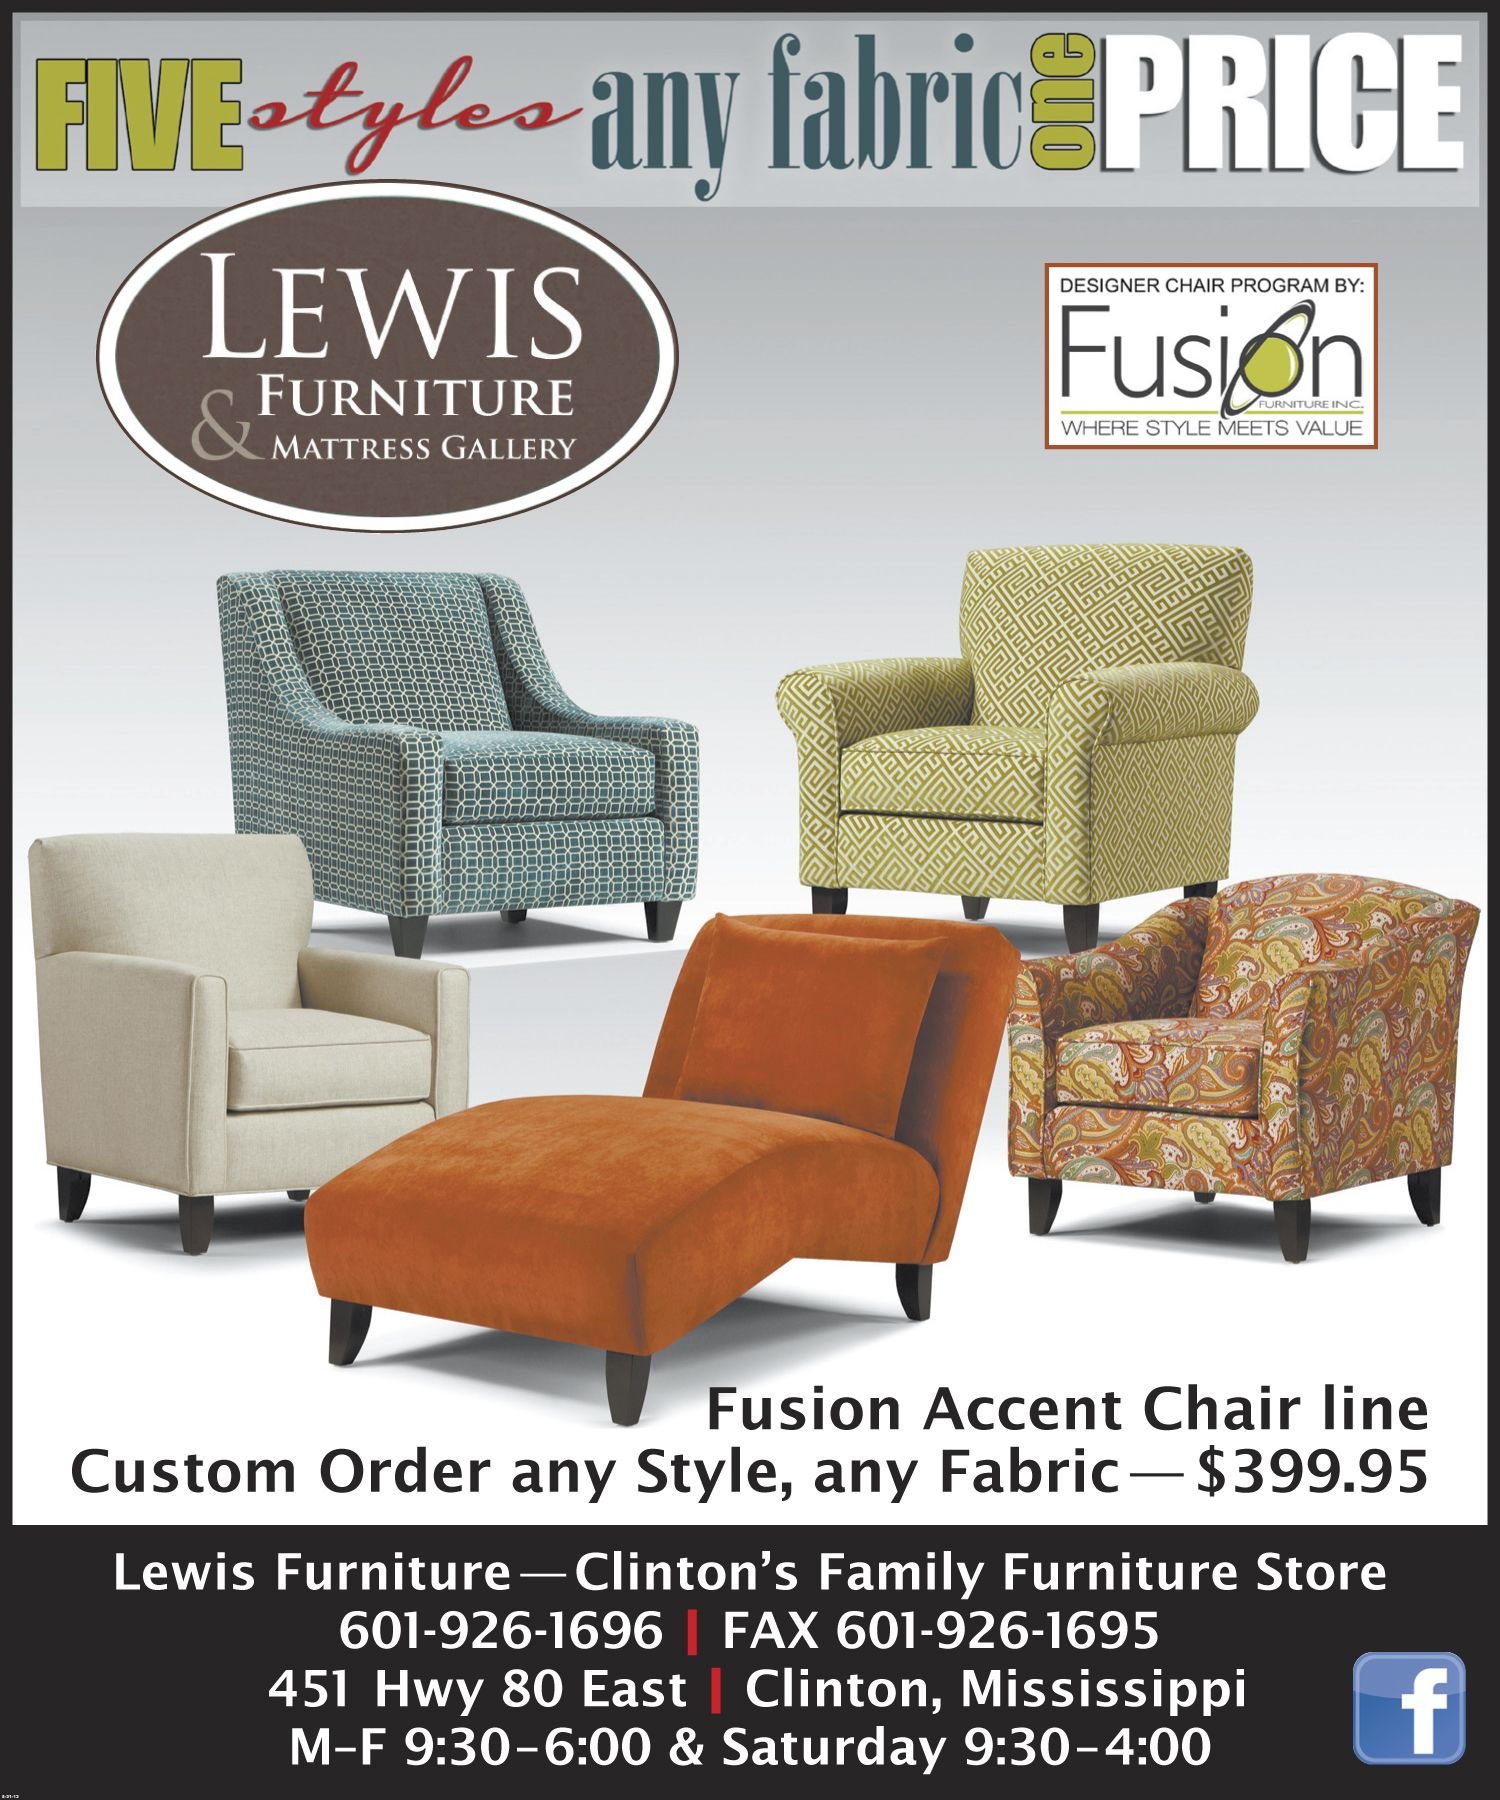 399 Furniture Store Five Styles Any Fabric One Price Fusionfurniture At Lewis